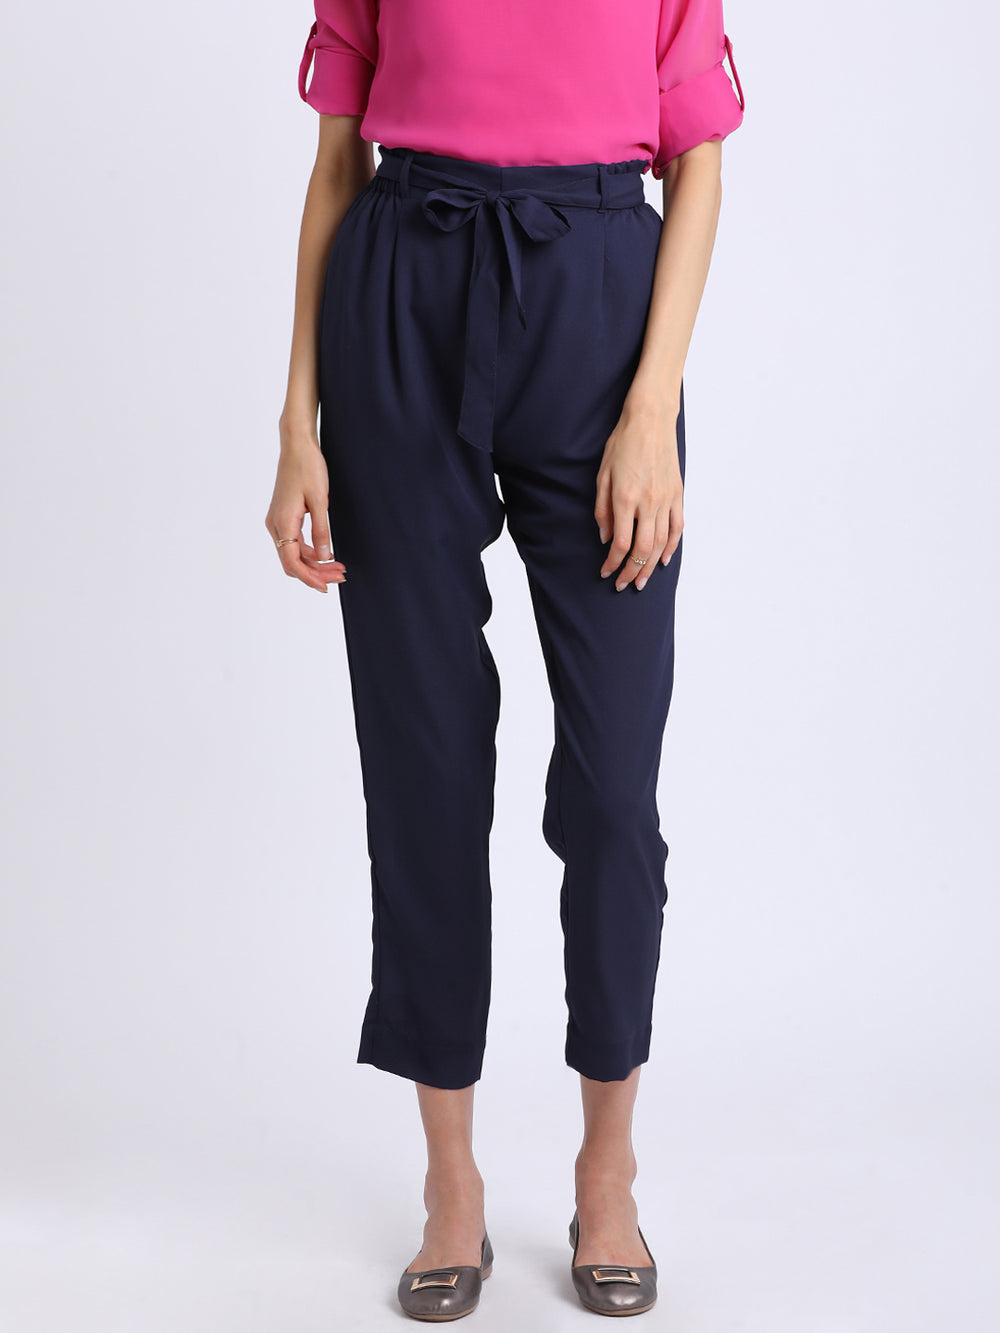 Besiva Women Navy Blue Regular Fit Solid Peg Trousers